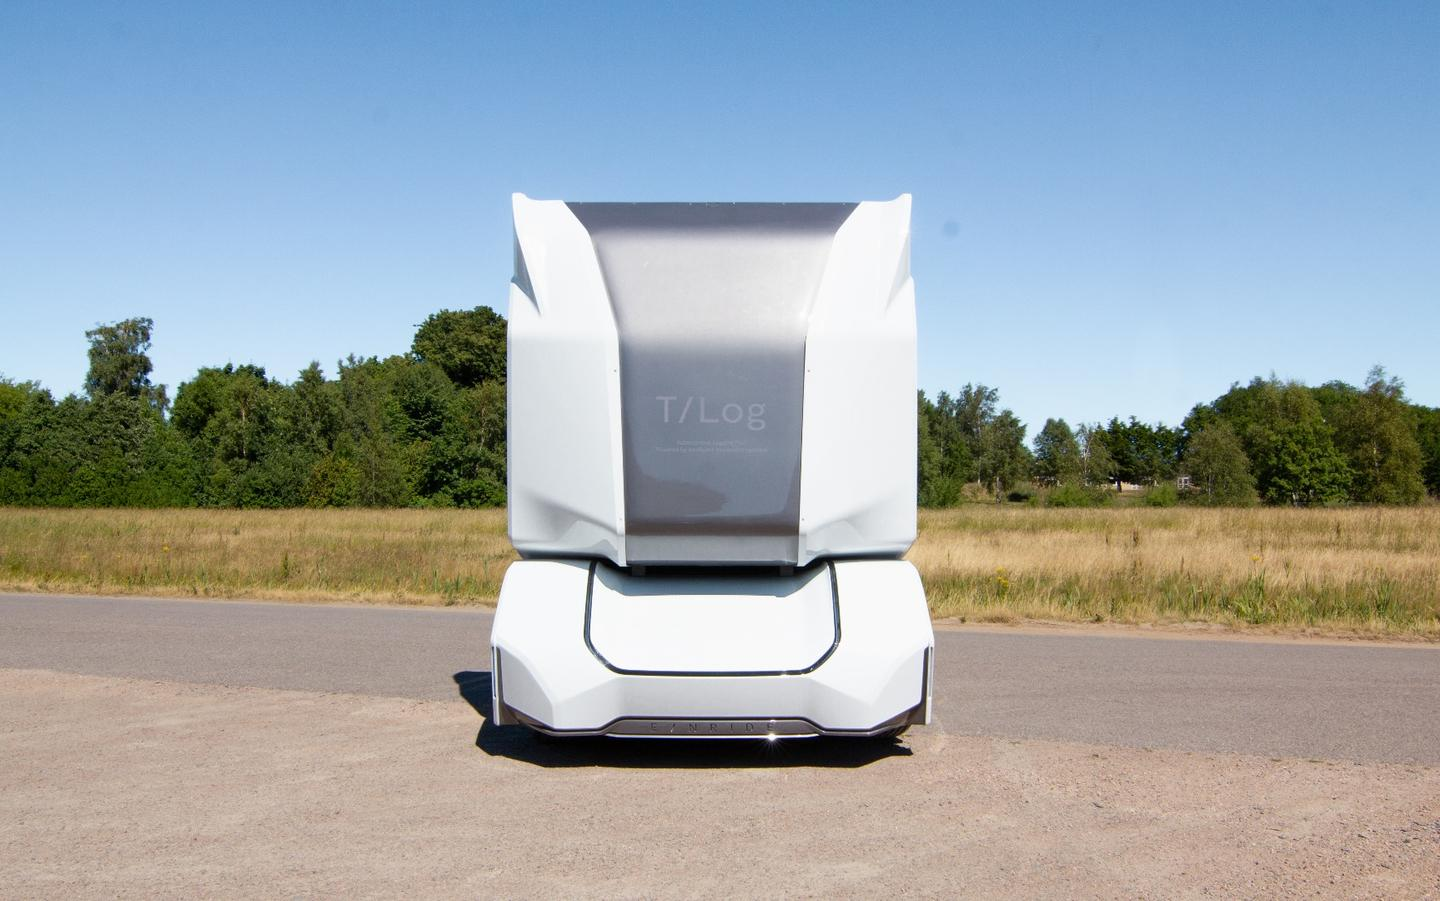 Being self-driven, the Einride T-logtruck has no driver's cab for a human to enter and sit in